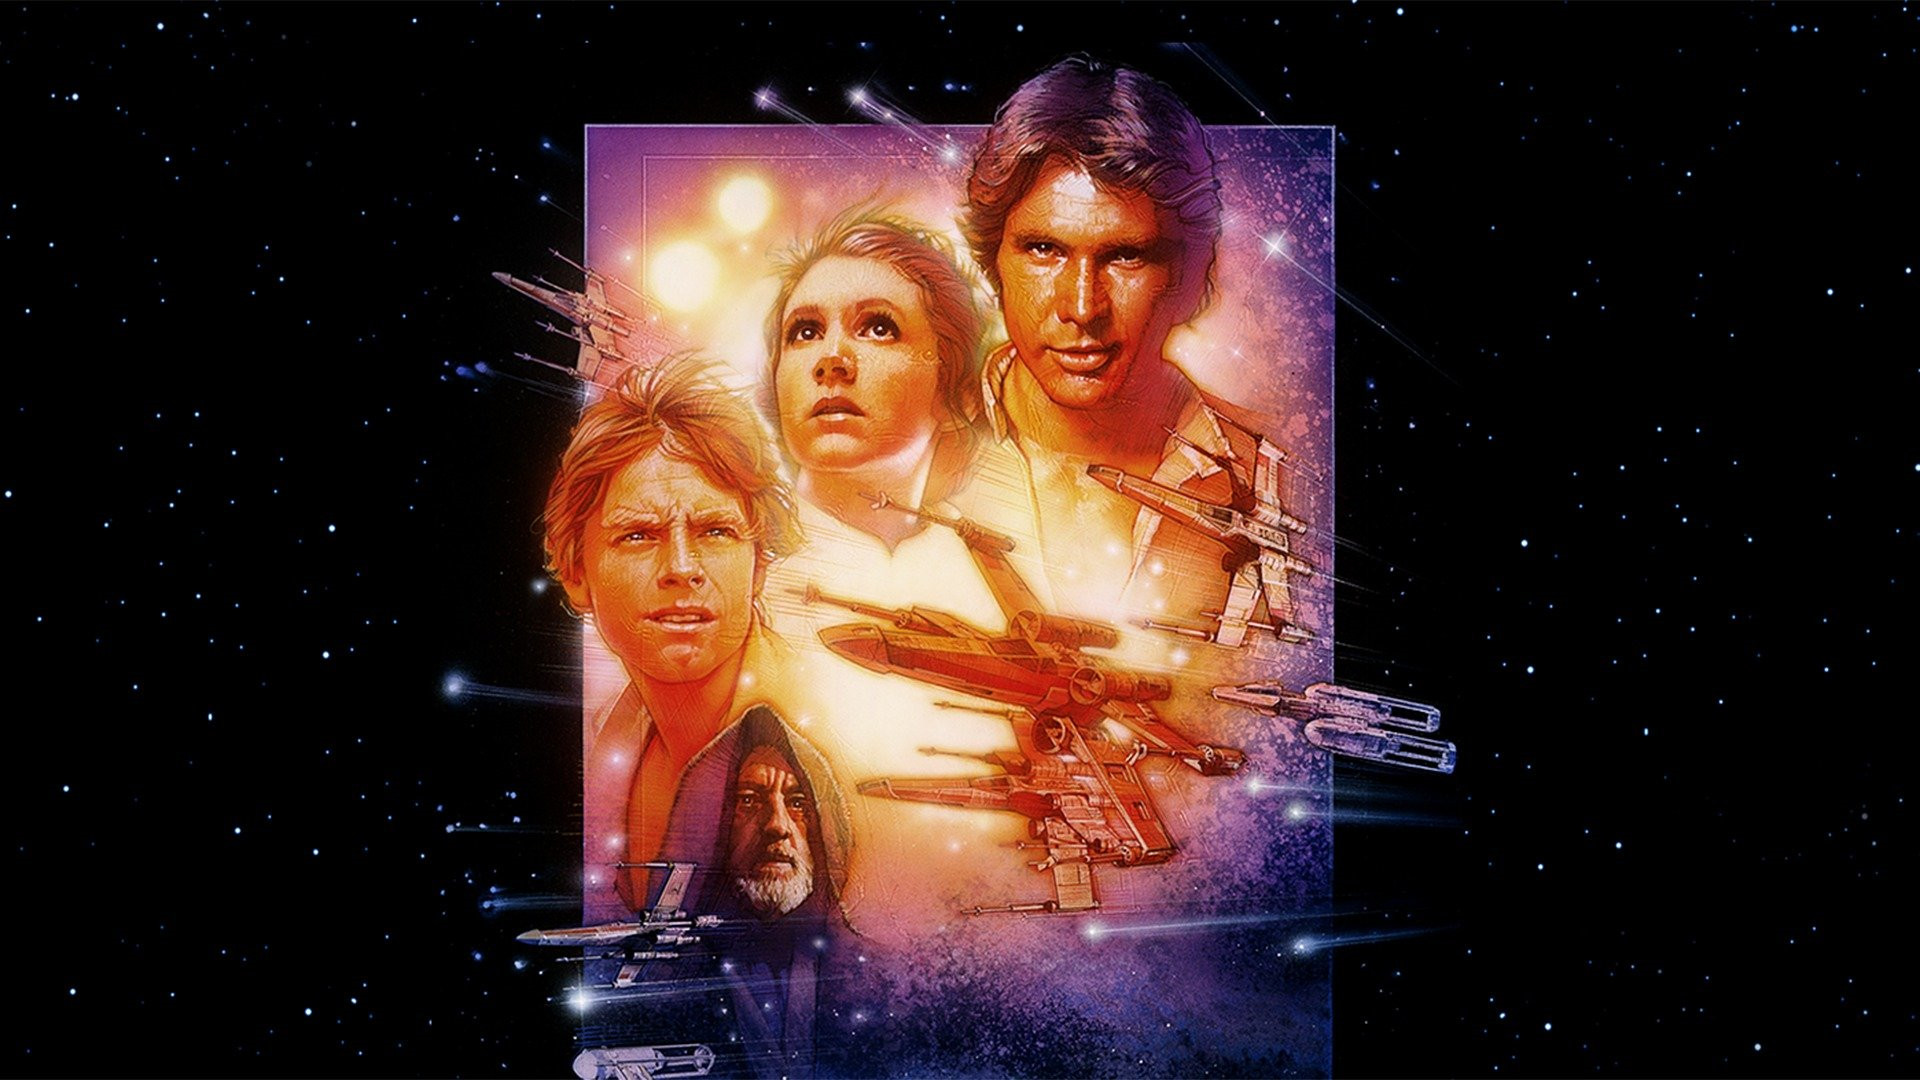 Star Wars New Hope Wallpaper Posted By Christopher Sellers